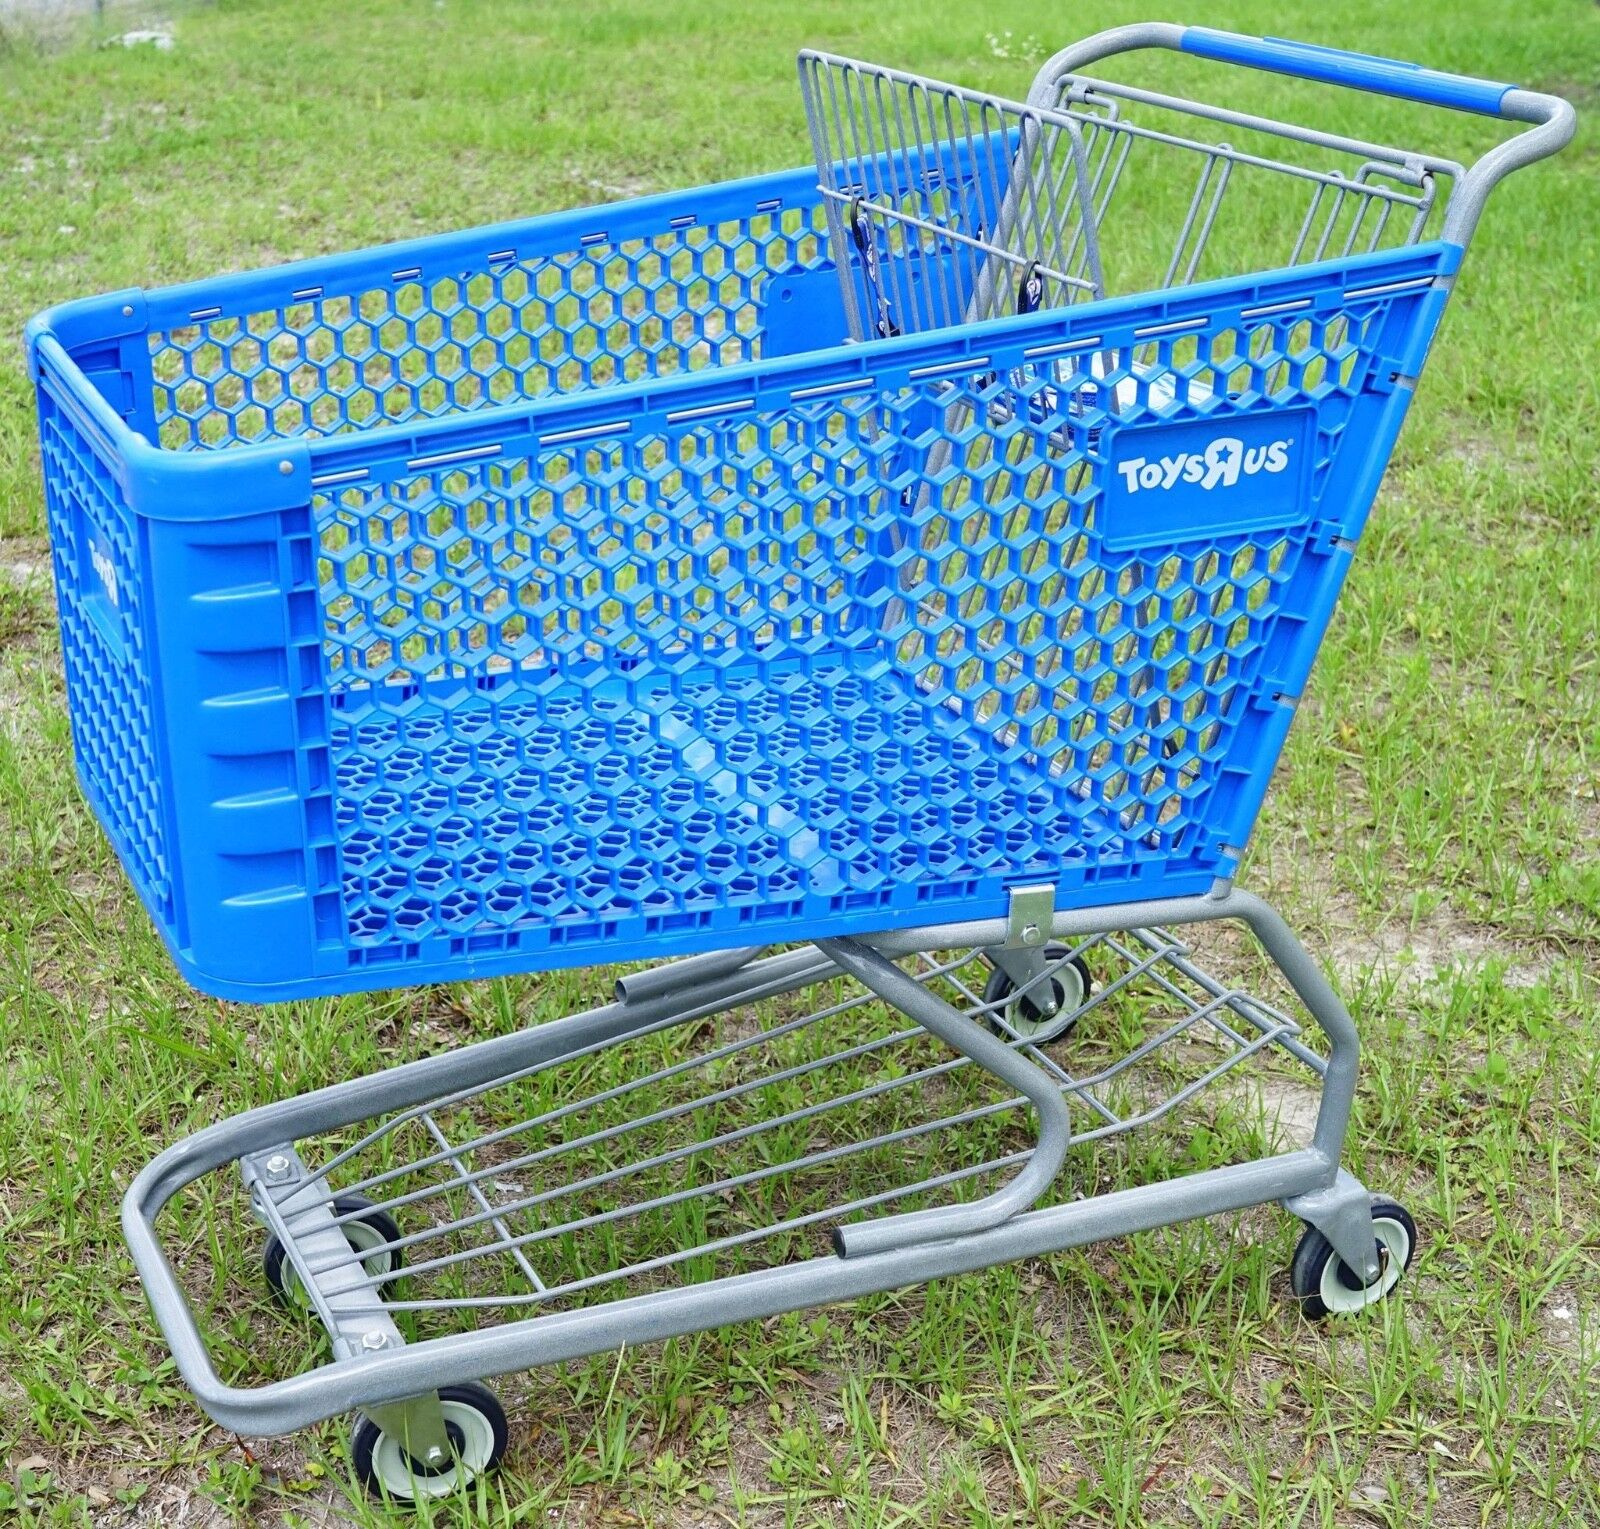 Details about  /TOY/'s R US shopping cart Toy Kids Store Carts Shop Fun Blue Vintage